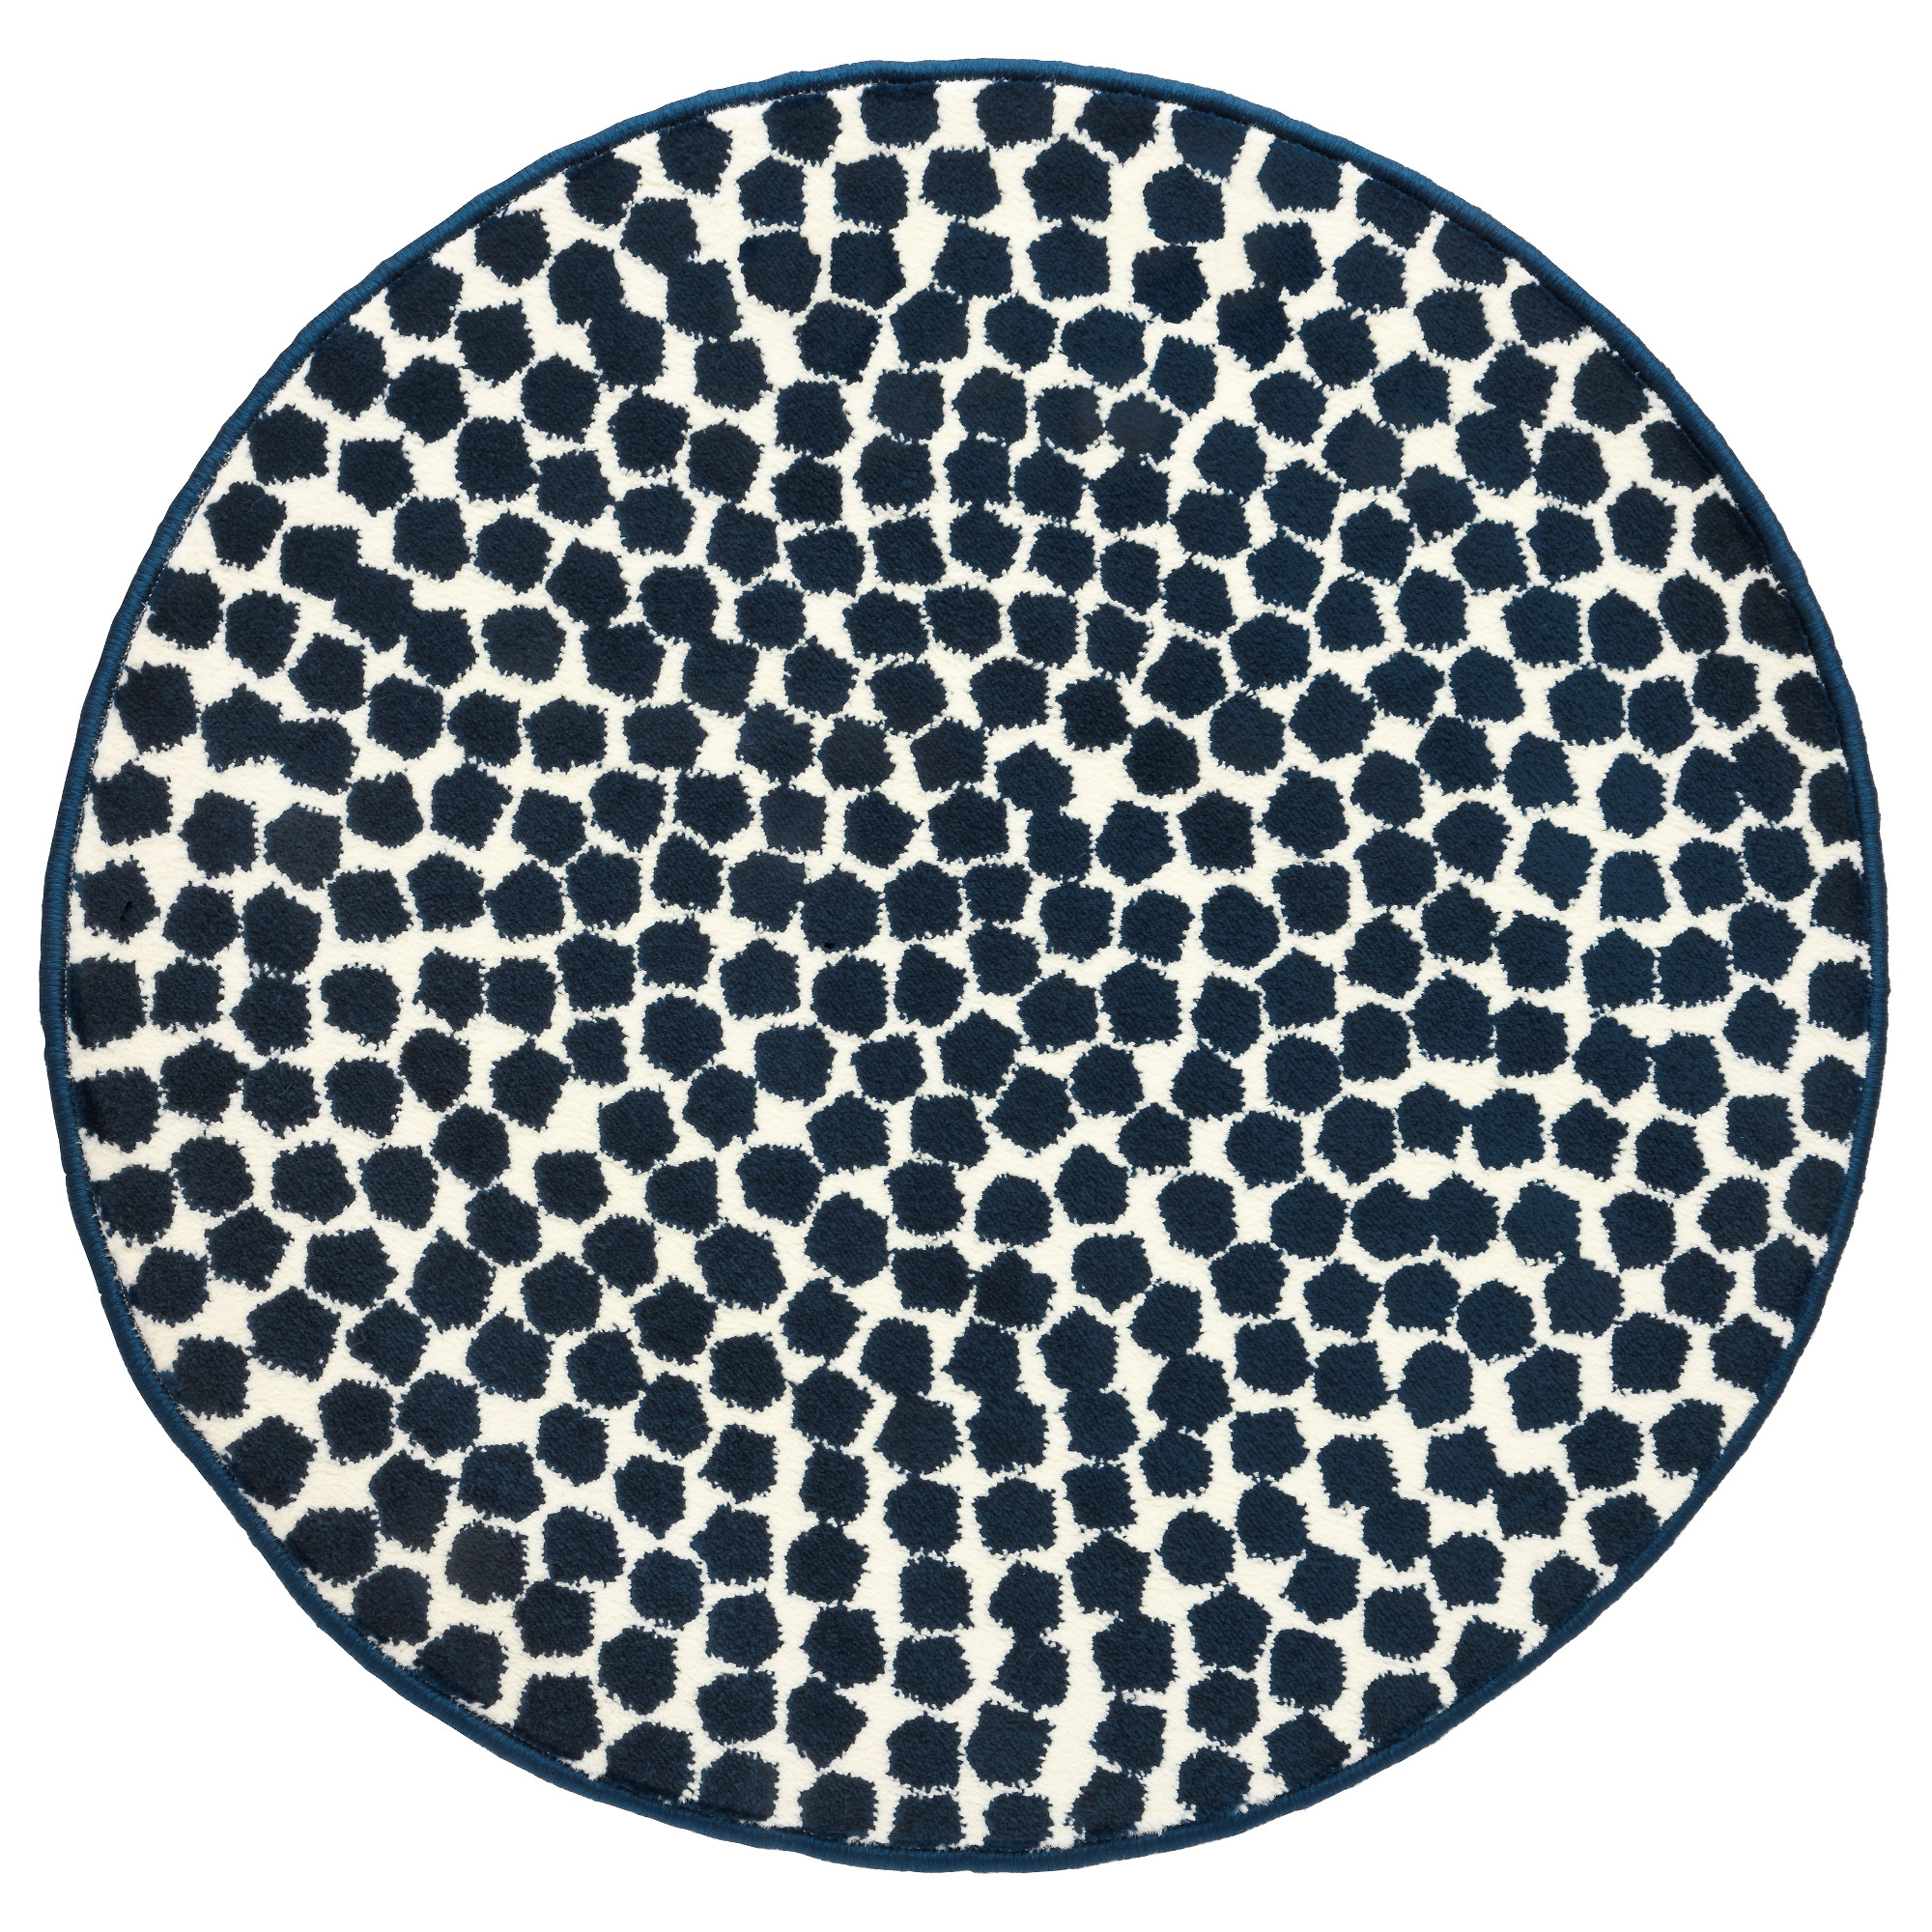 Round Rugs Ikea Regarding Small Circular Rugs (Image 12 of 15)